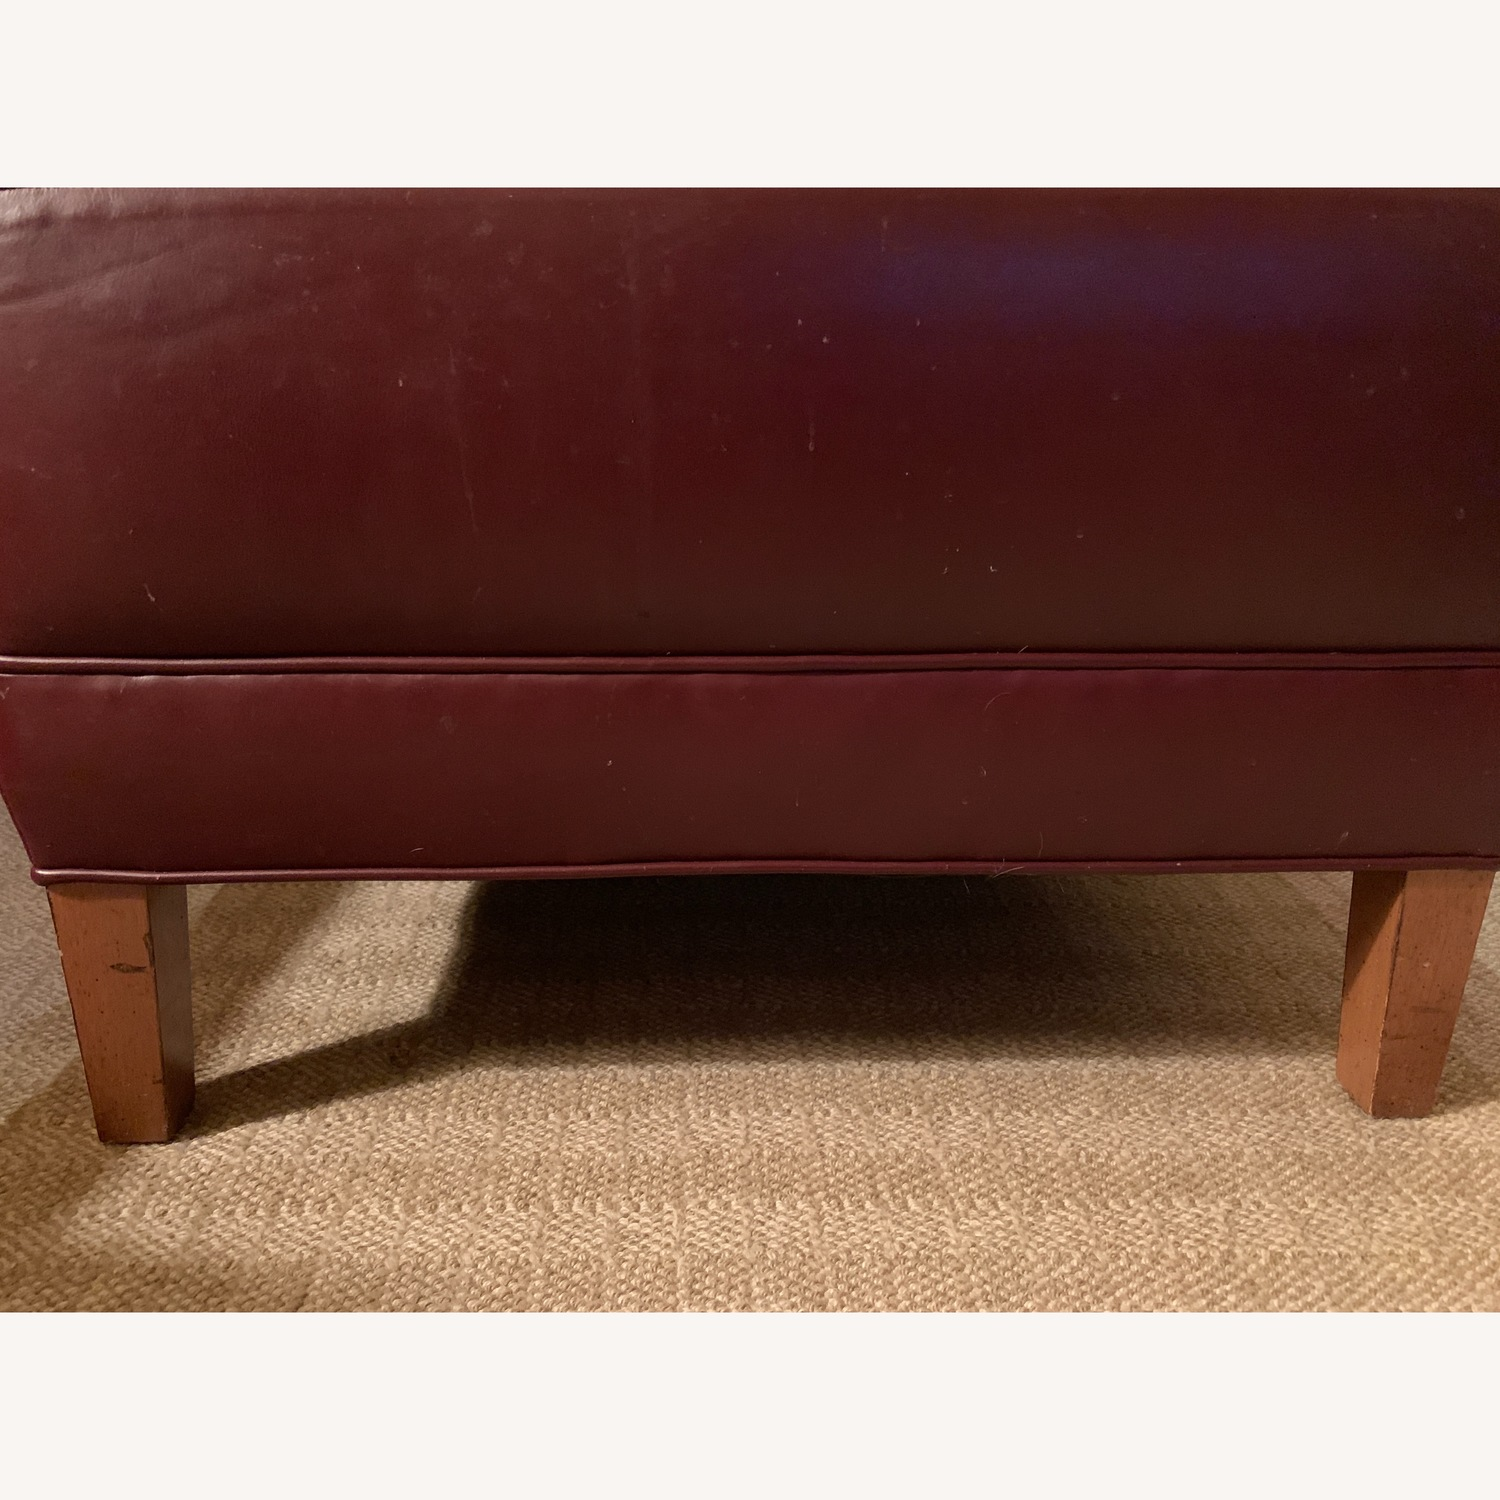 Ethan Allen Burgundy Tufted Leather Ottoman - image-2